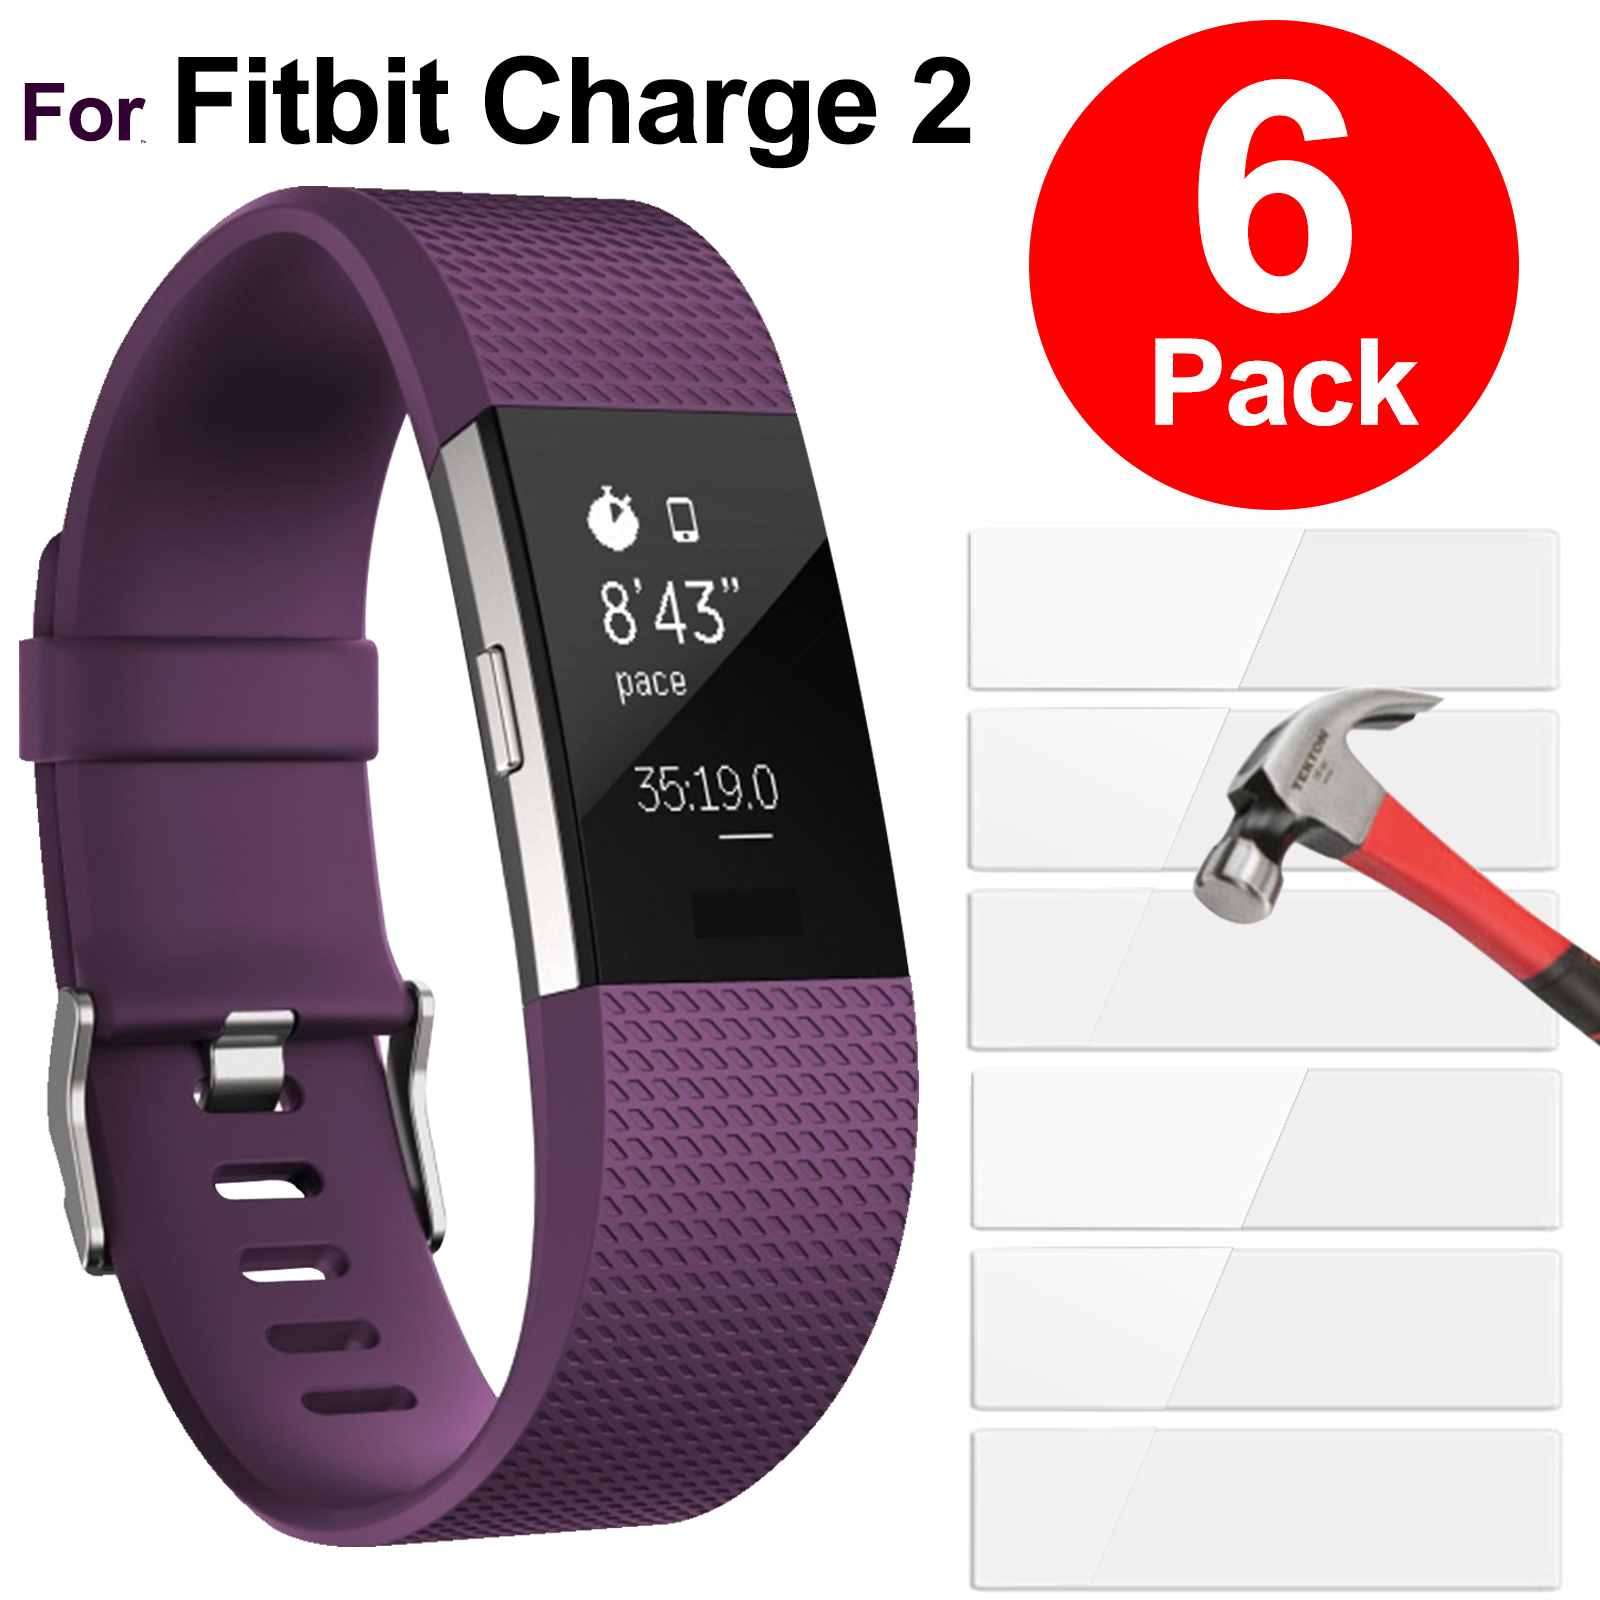 6Pcs HD Clear Screen Protectors Film Cover Shield for Fitbit Charge 2